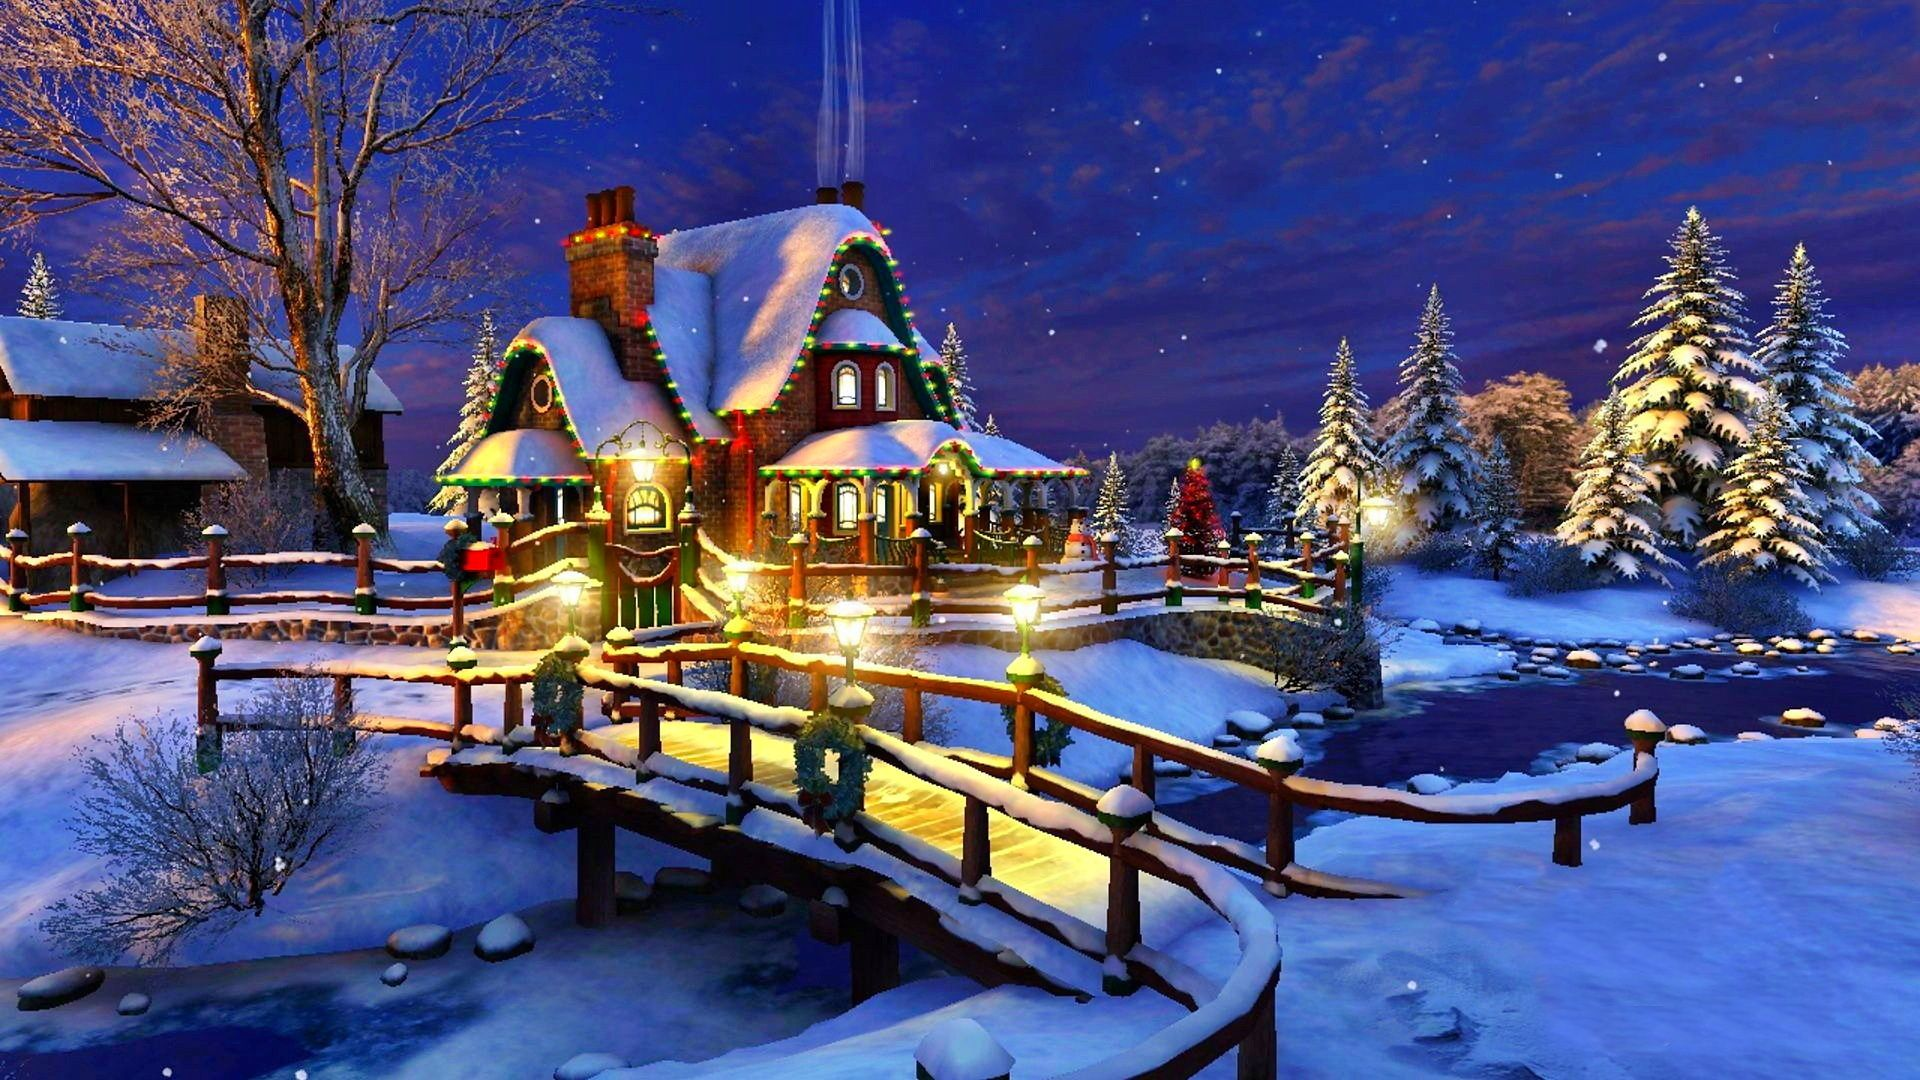 Christmas, Xmas, Winter, Lighting, Night, Cottage